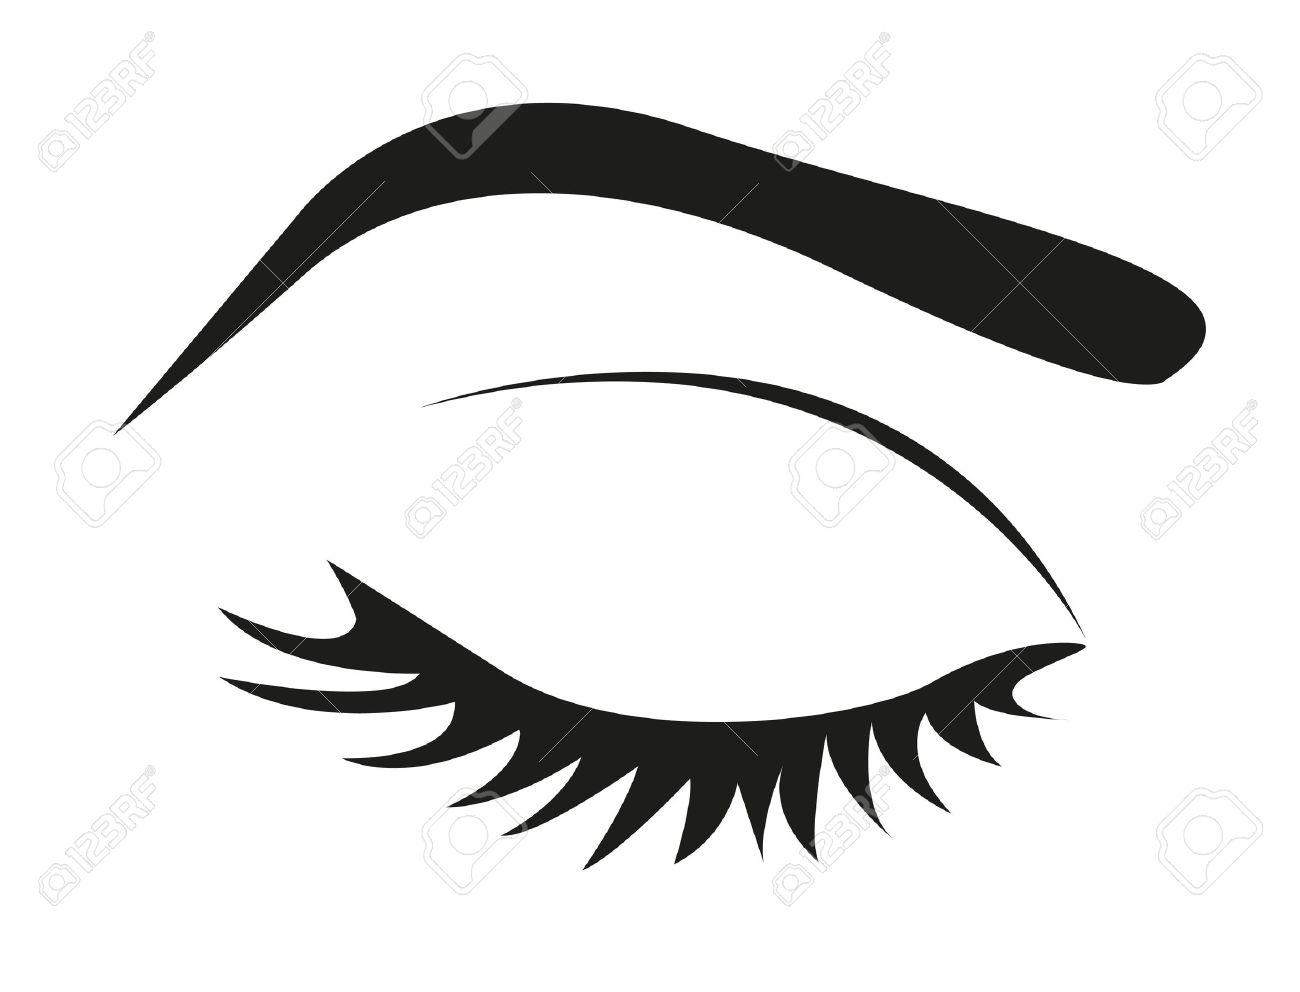 Silhouette Of Eye Lashes And Eyebrow Closedillustration Royalty